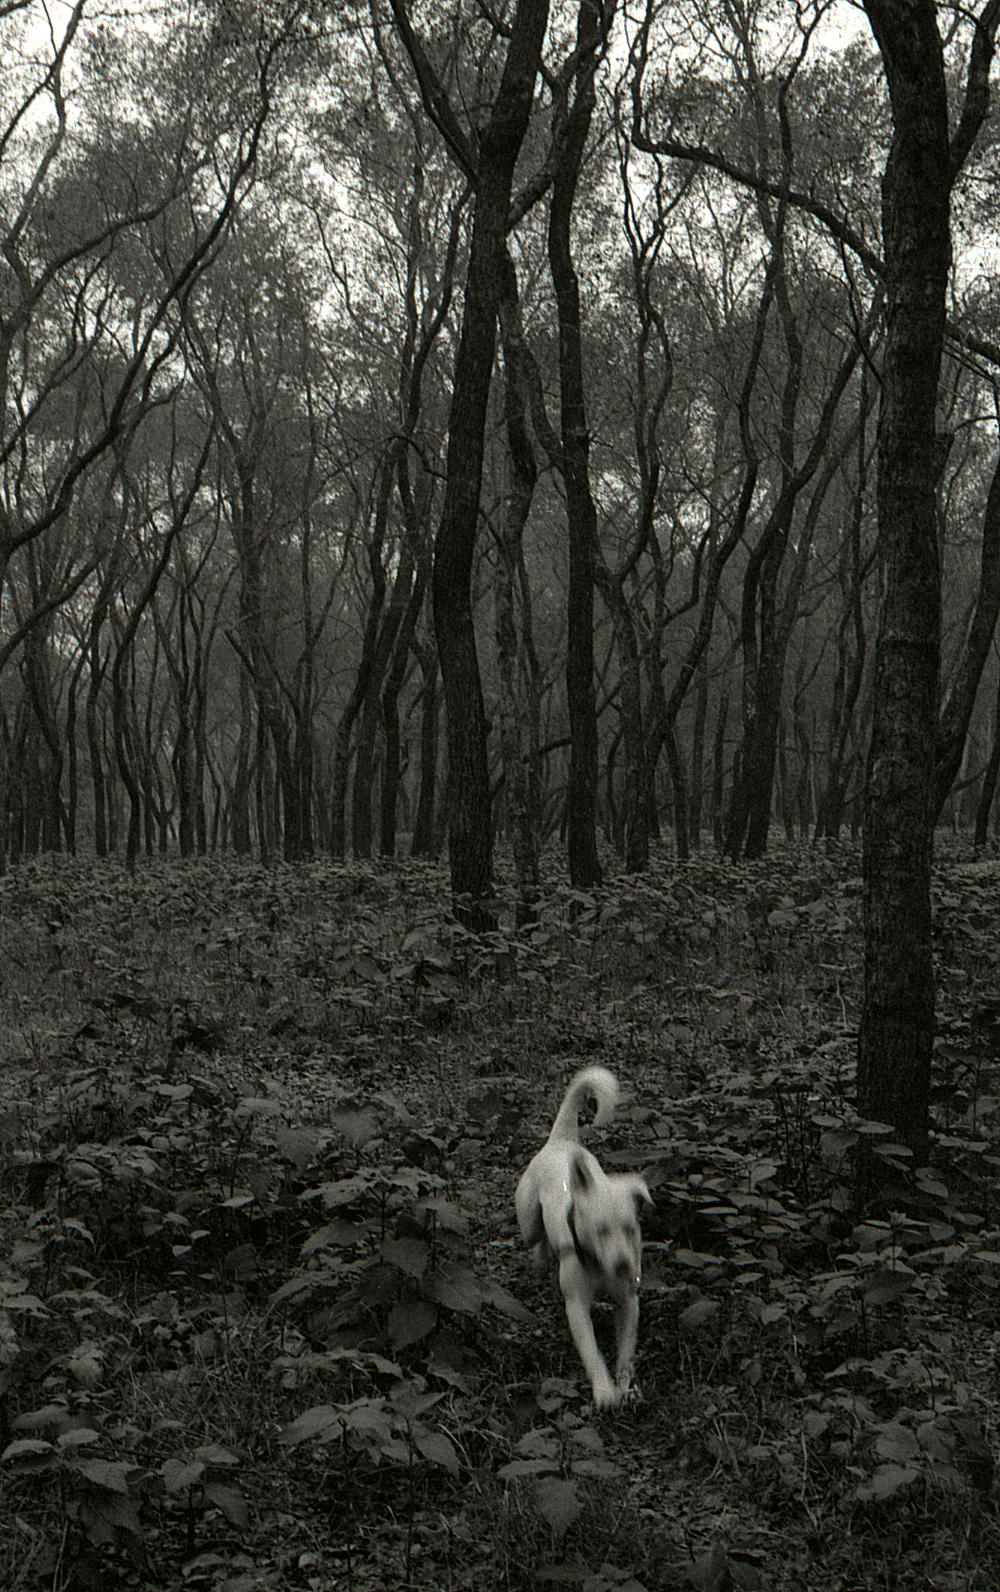 Orville running through the Queen's Forest, Kathmandu.